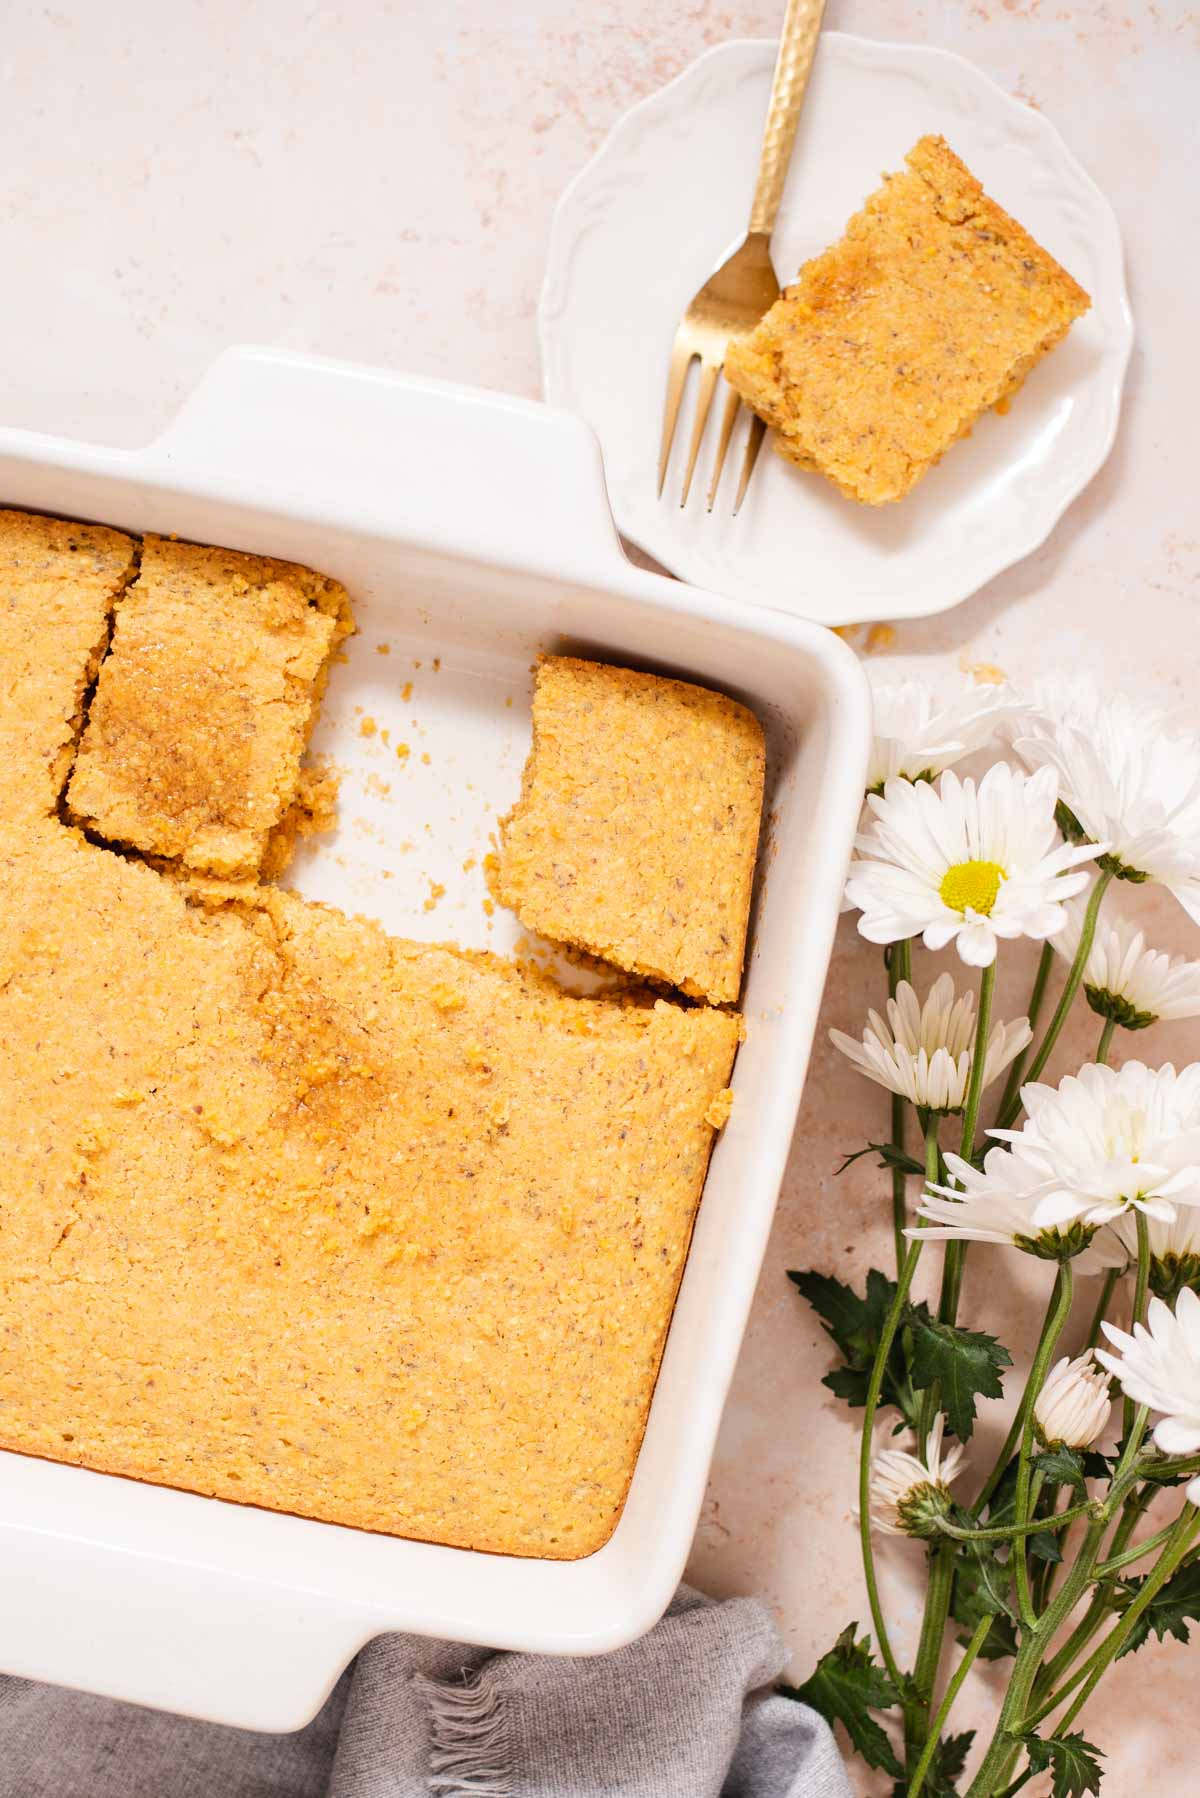 Overhead view of white ceramic dish filled with cornbread next to plate with slice of cornbread